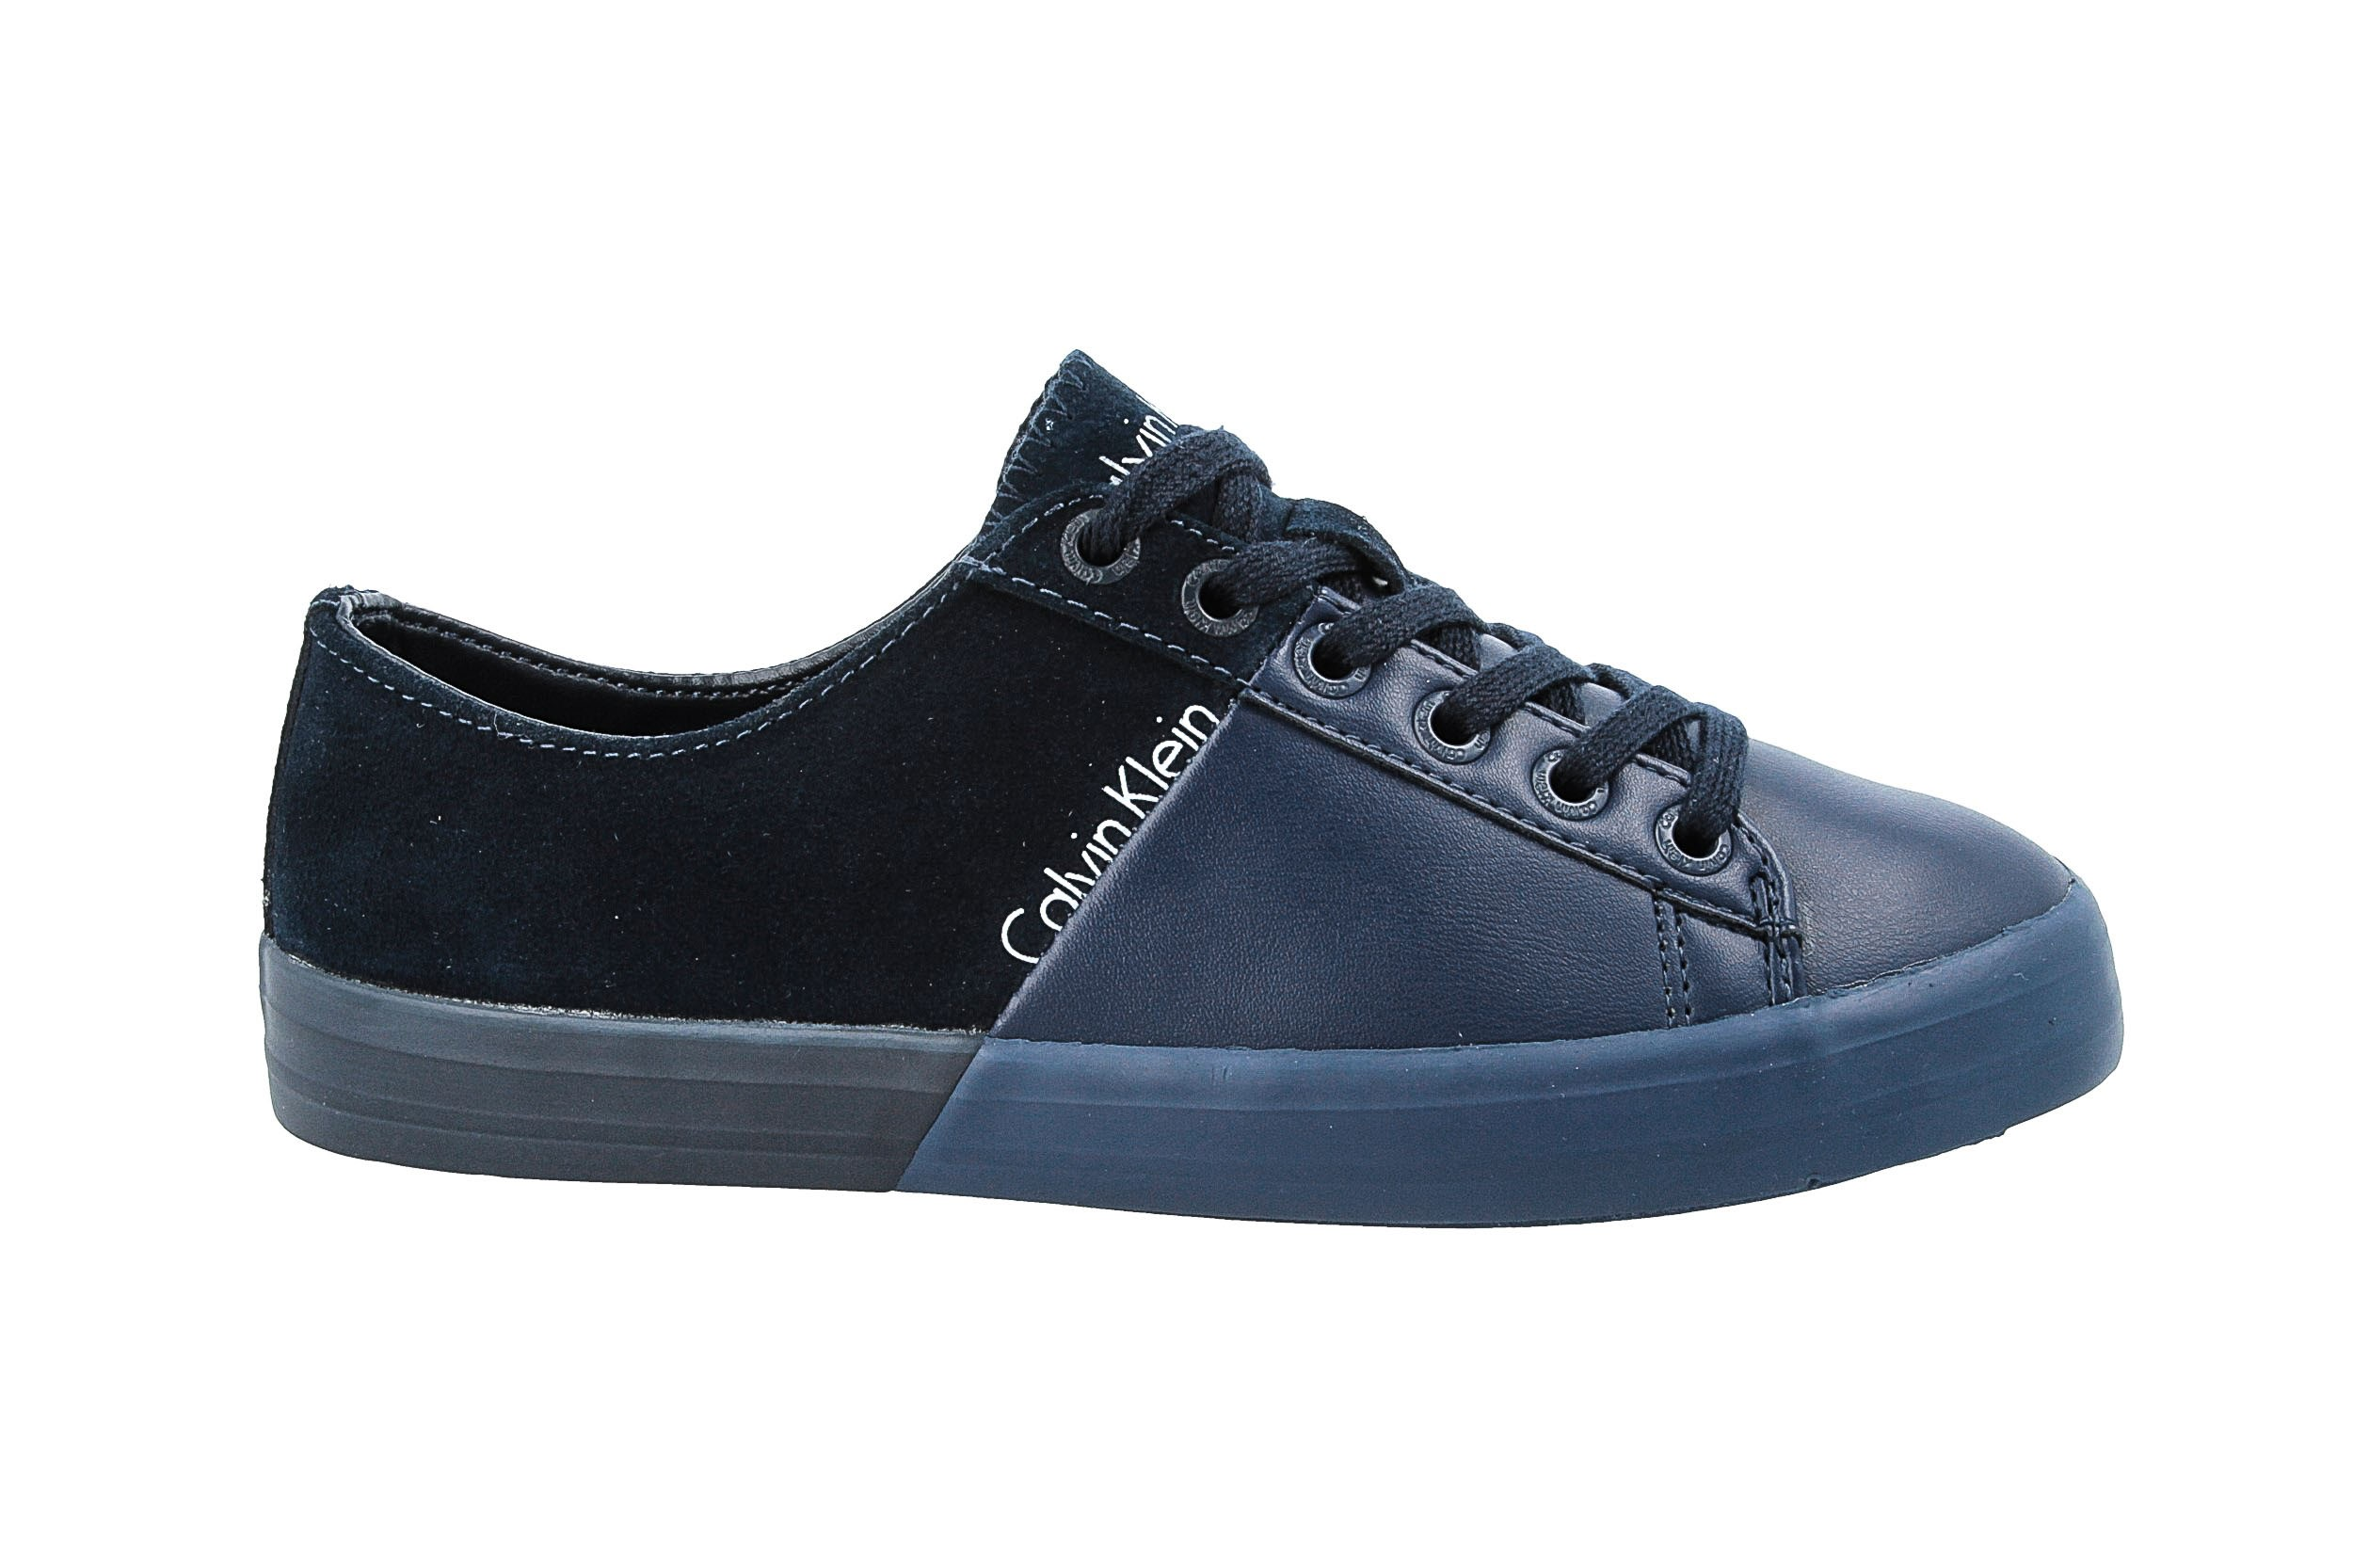 Sneakersy CALVIN KLEIN JEANS Wanda RE9656 Midnight • Modivo.pl